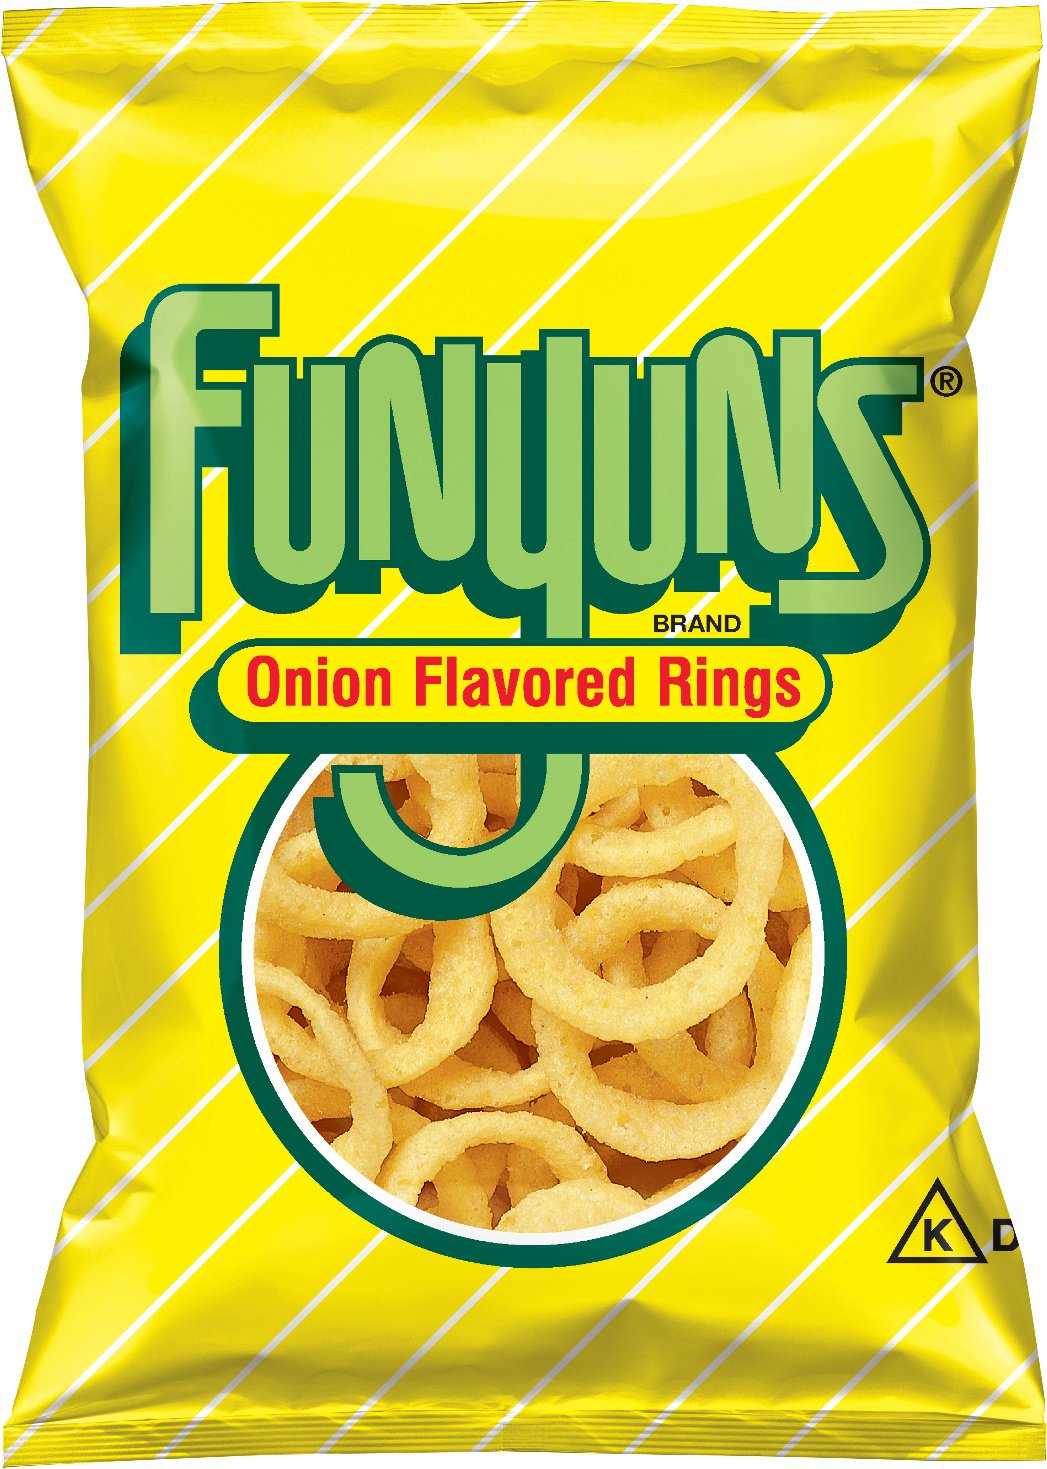 Funyuns Onion Flavored Rings, 1.25 Ounce (Pack of 64) by Funyuns (Image #1)